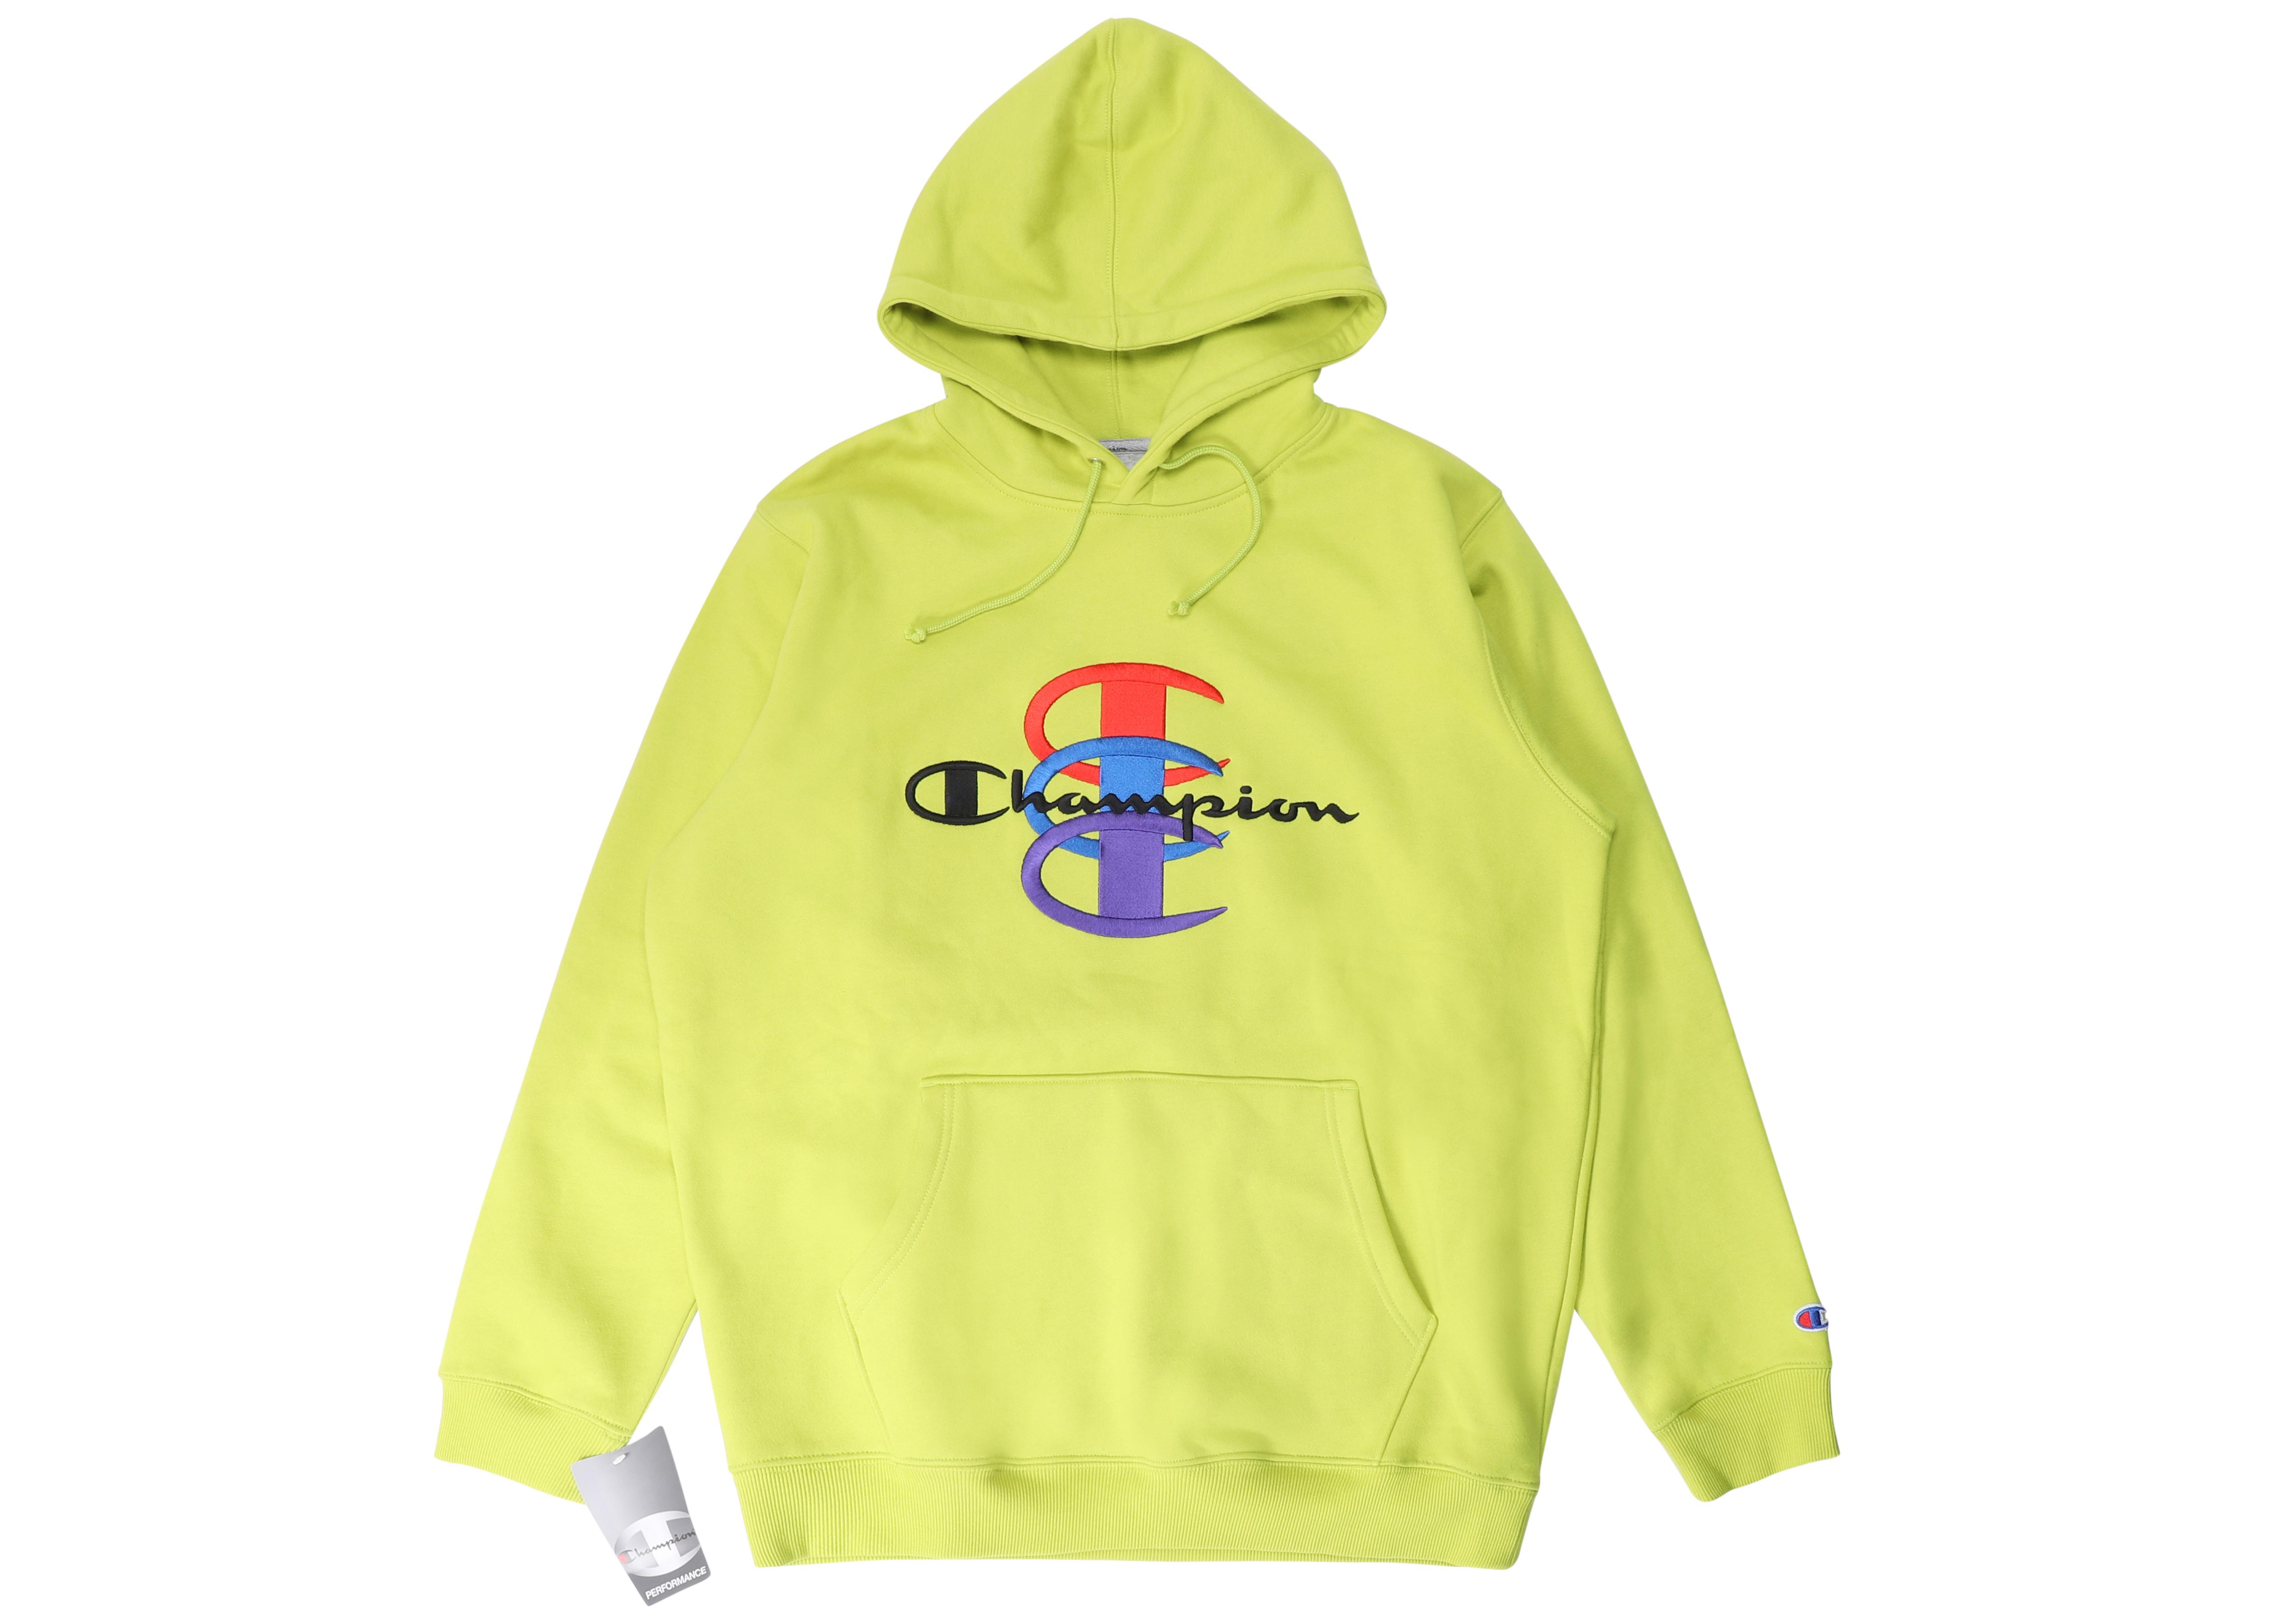 e63d303f Supreme Champion Stacked C Hooded Sweatshirt Bright Green in Green ...